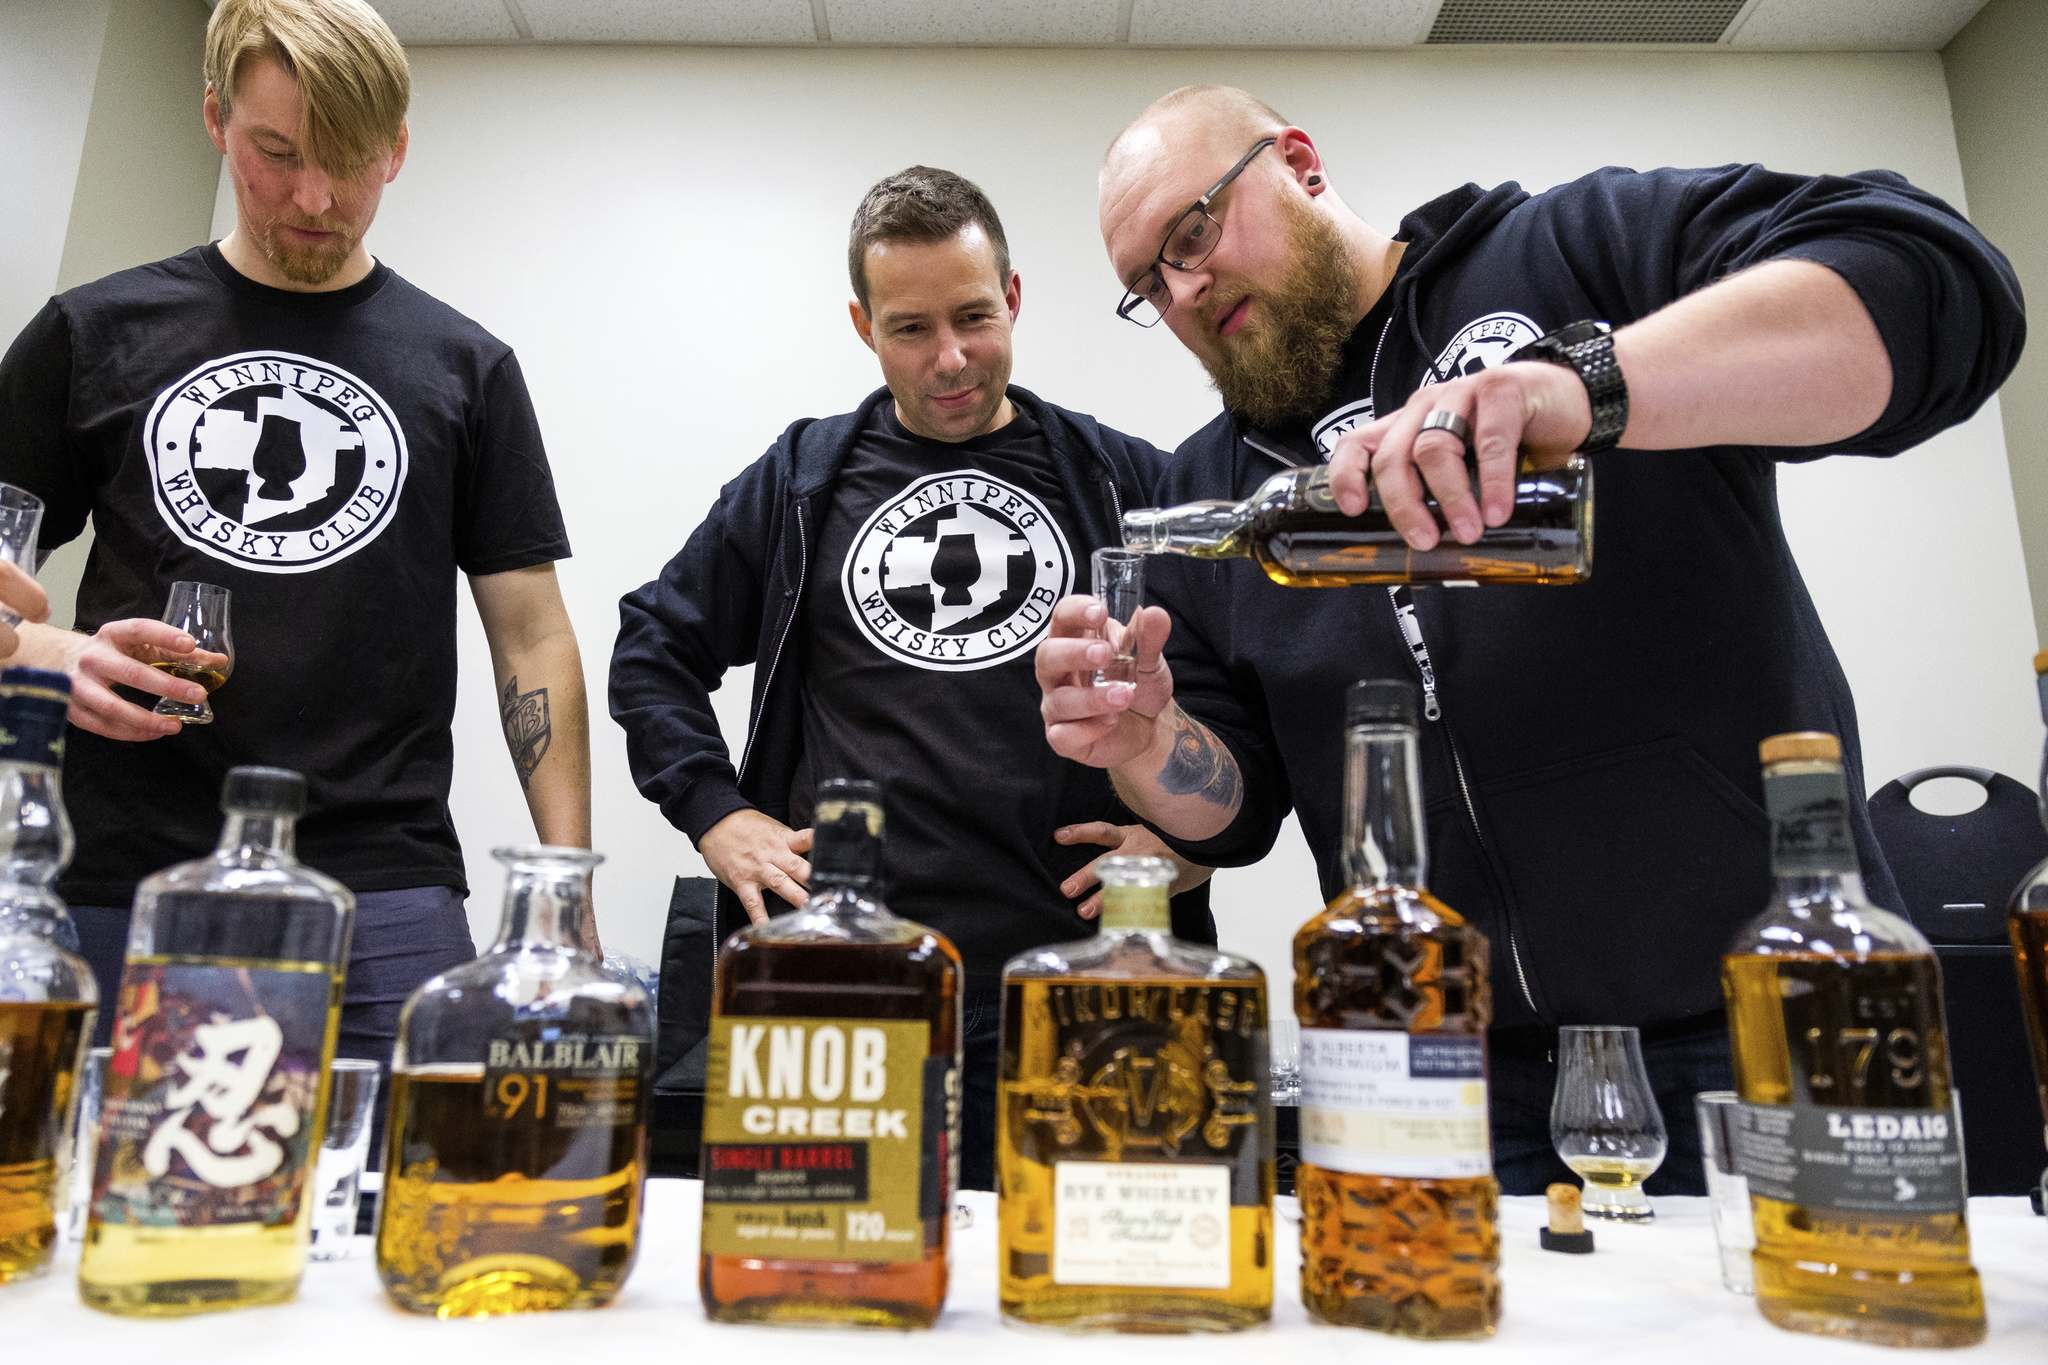 Club founder Mark Kaufmann (middle) with the evening's selection, 10 whiskies in all.</p>